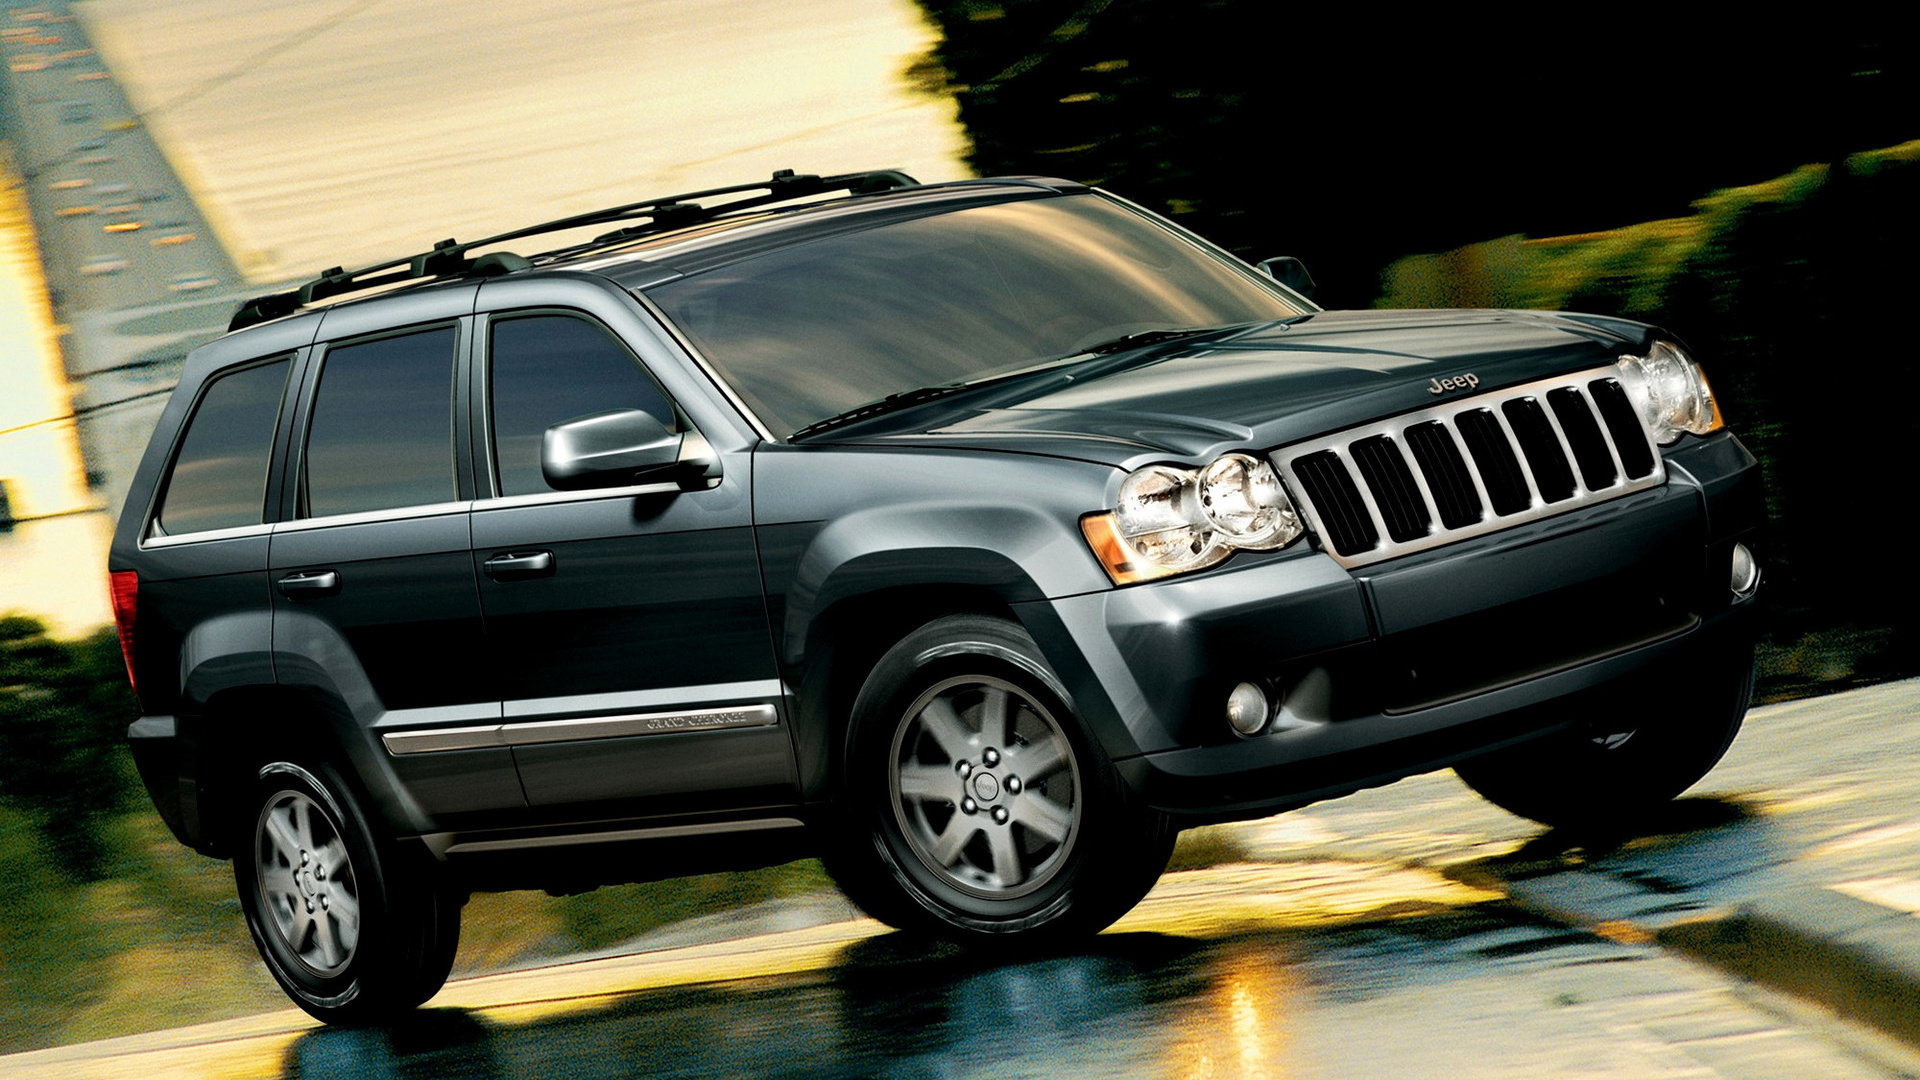 2008 Jeep Grand Cherokee Laredo >> Jeep Grand Cherokee (2008) US Wallpapers and HD Images ...